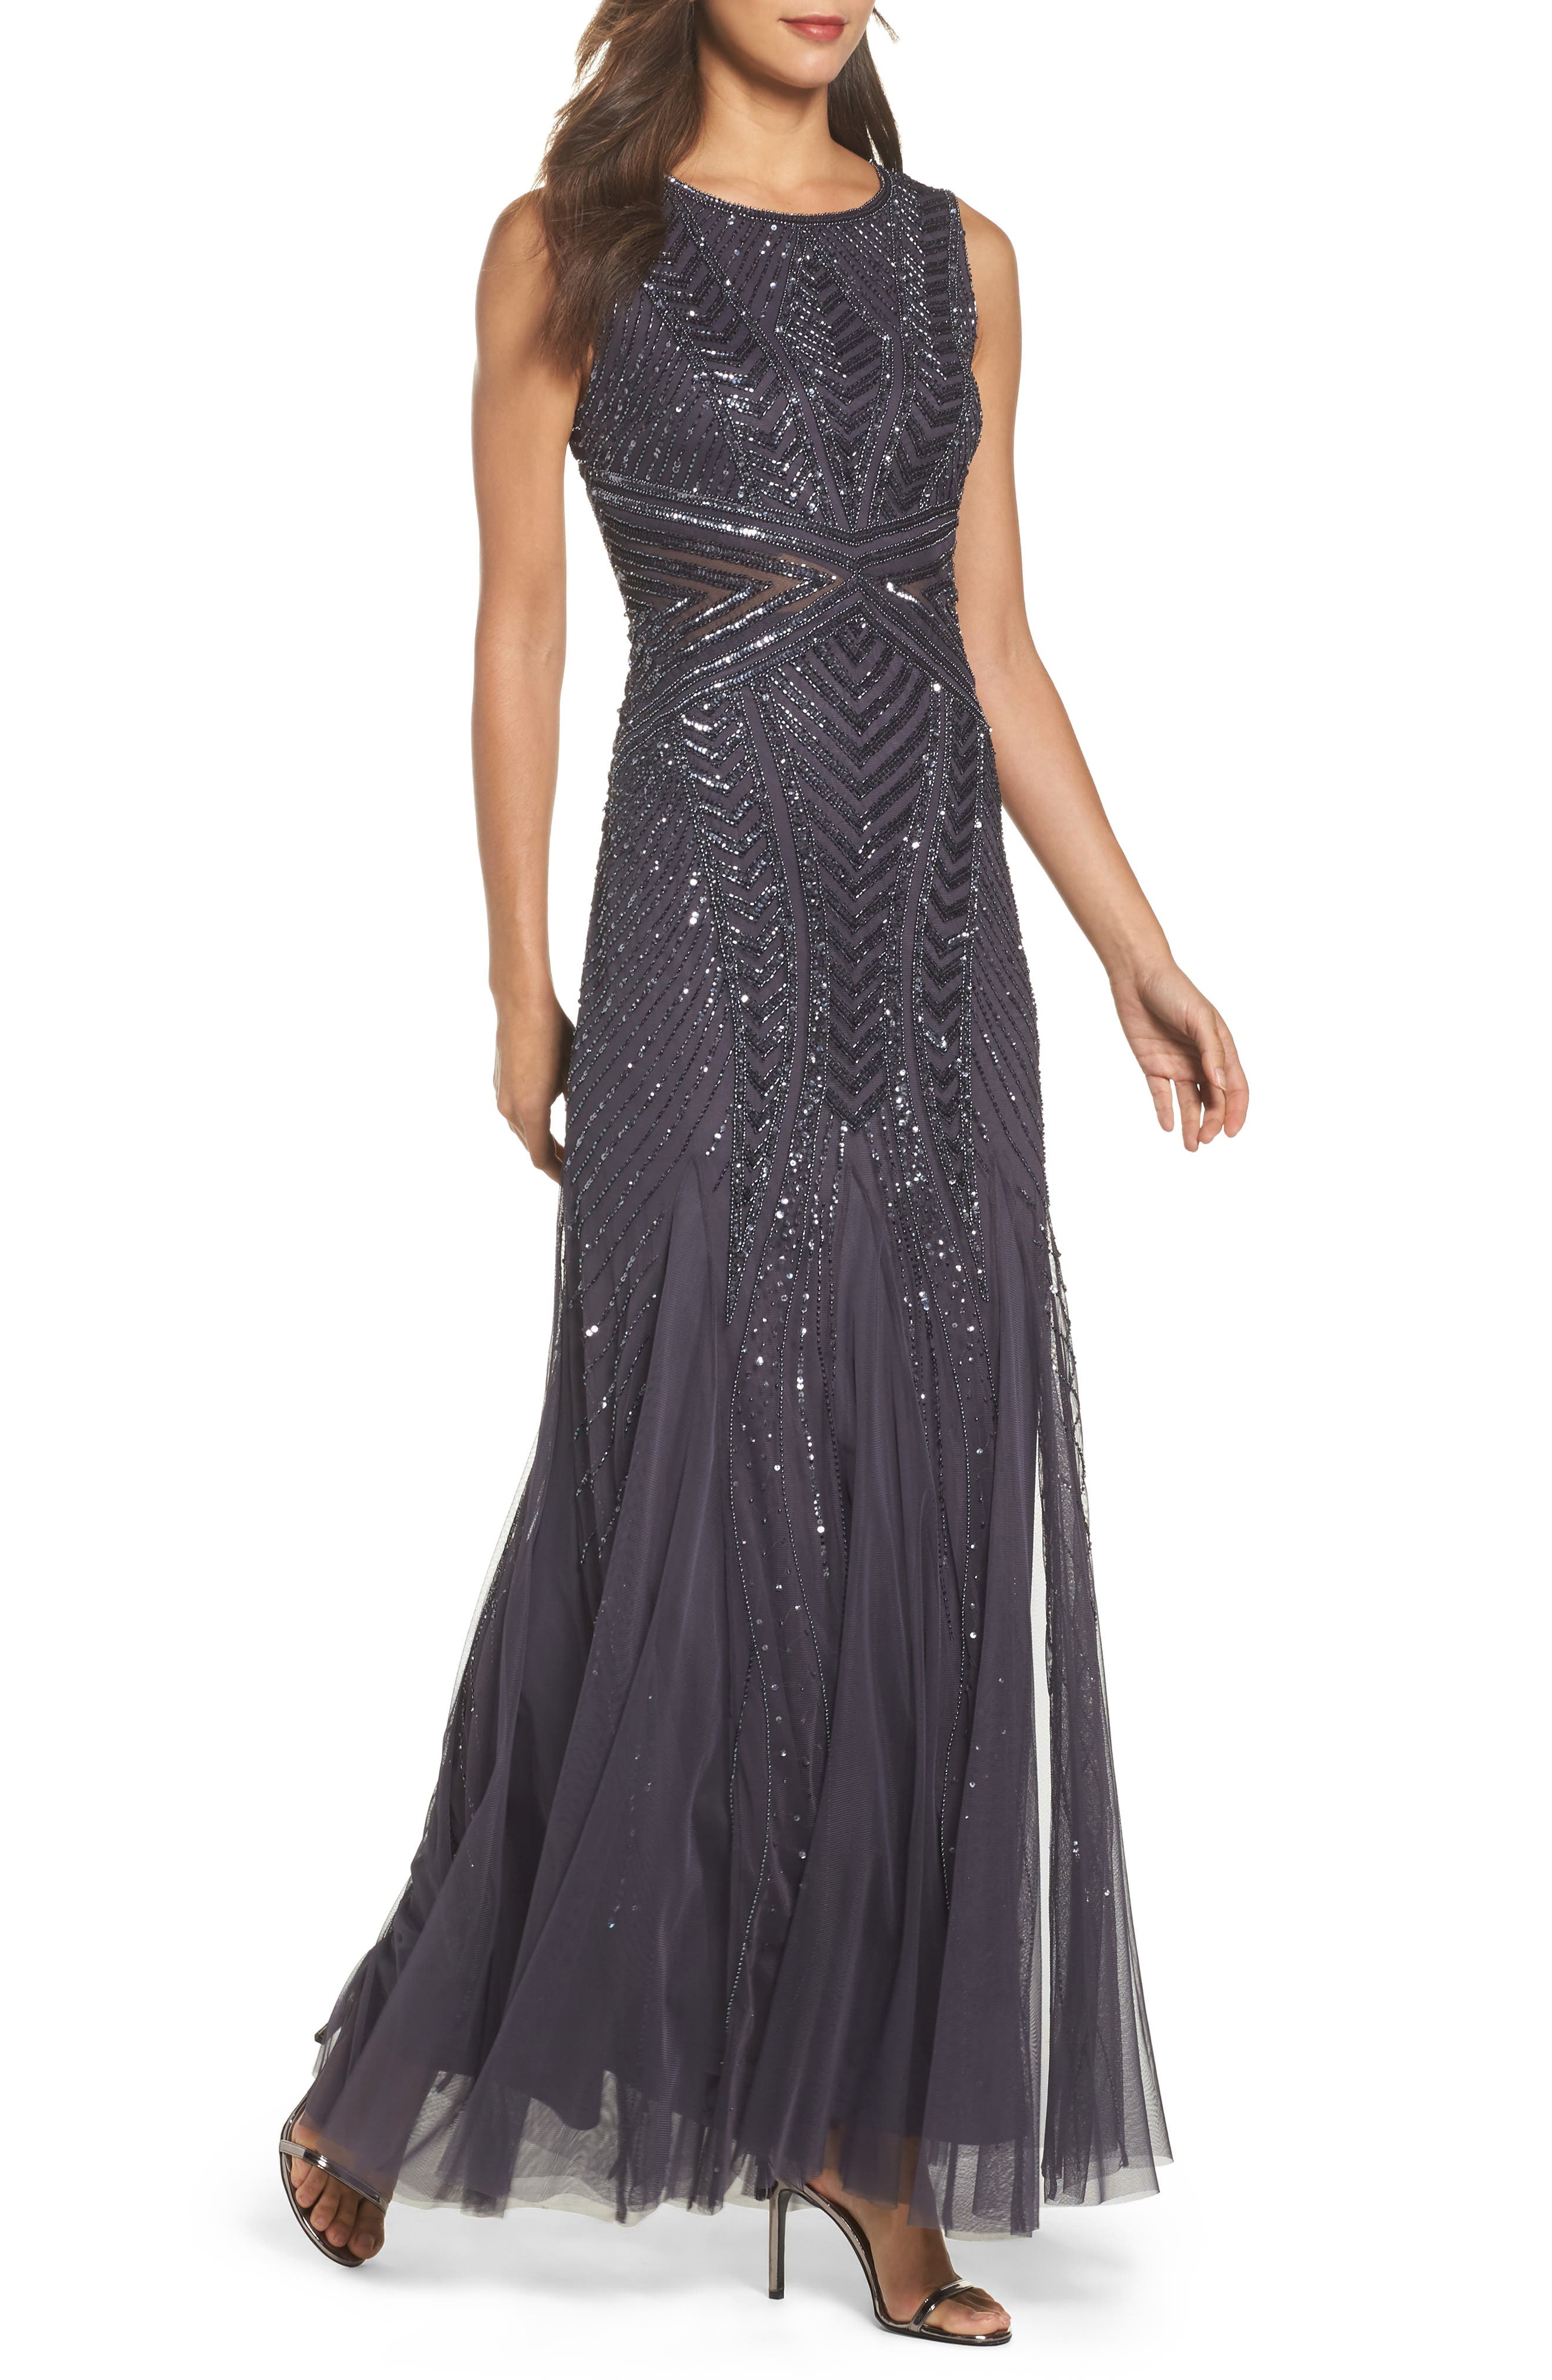 Alternate Image 1 Selected - Adrianna Papell Beaded Sleeveless Gown (Regular & Petite)